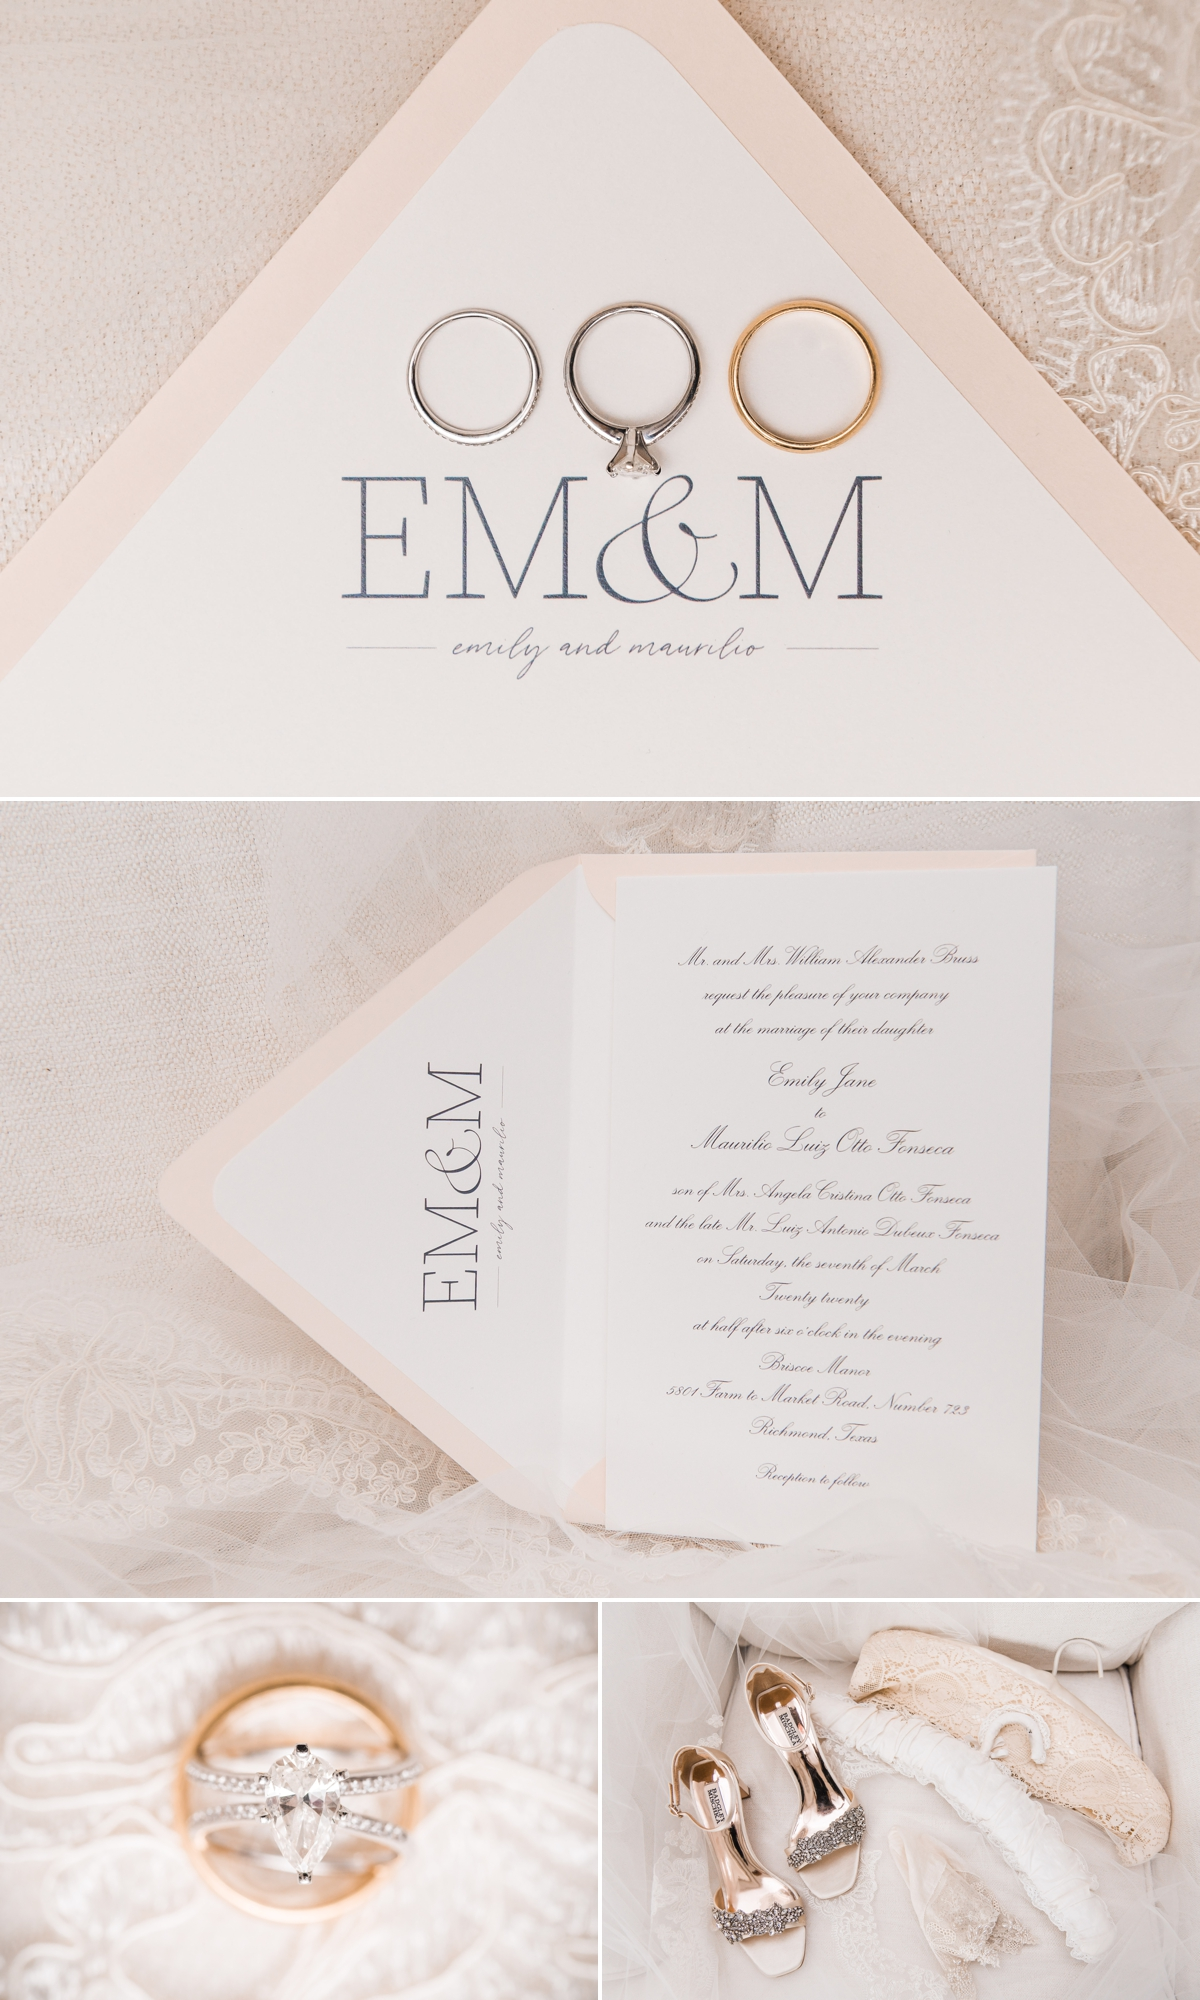 Blush and White Wedding Invitation and Heirloom wedding details